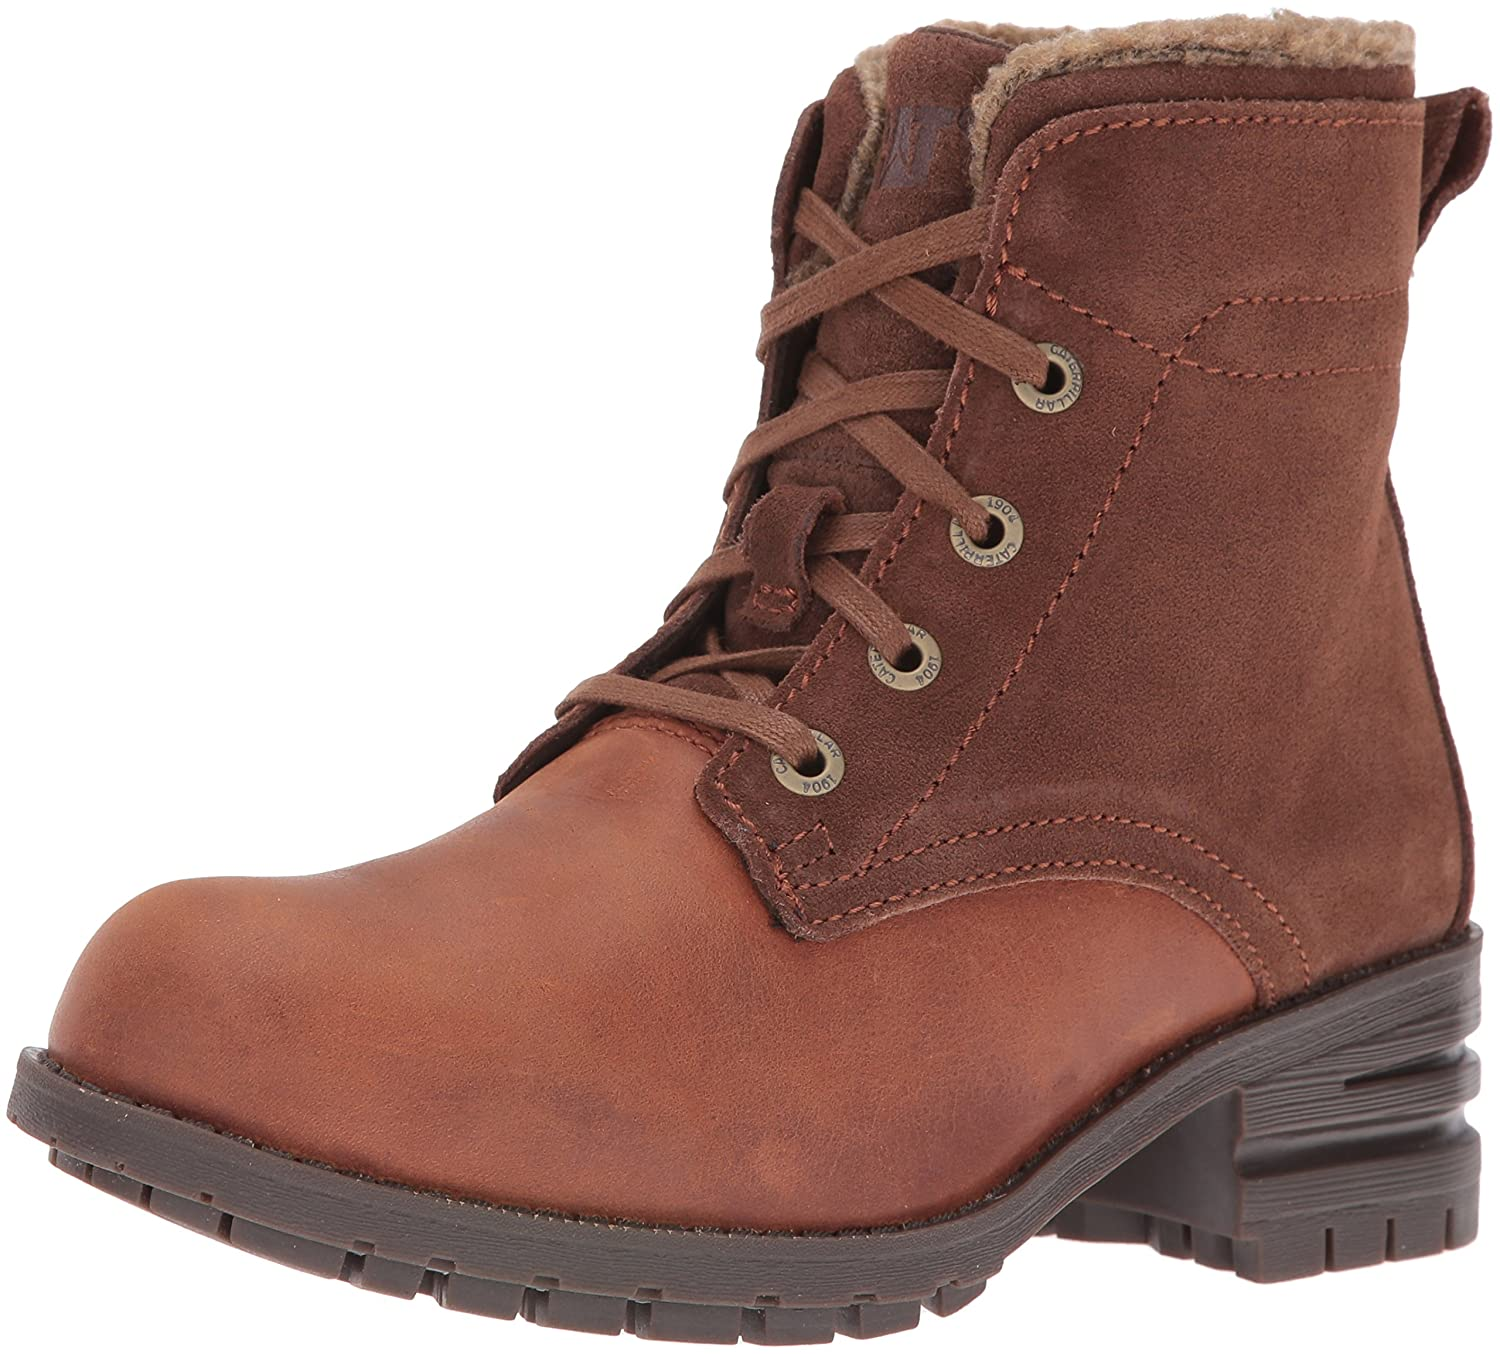 Caterpillar Women's Teegan Boot B01A63XU20 6.5 B(M) US|Womens Rust